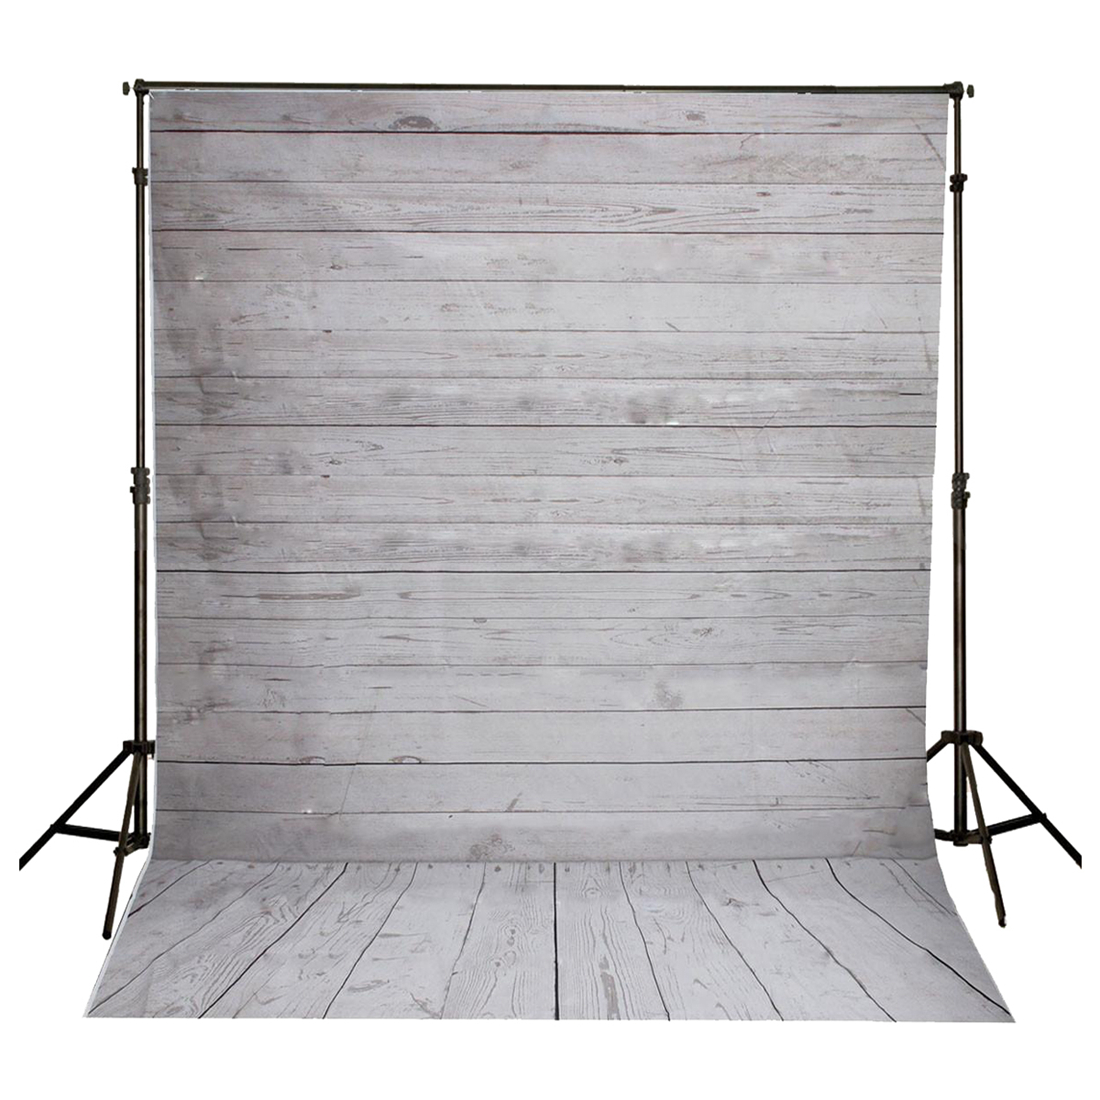 5x7FT Vinyl Photography Backdrop Photo Background, Gray+white wood floor